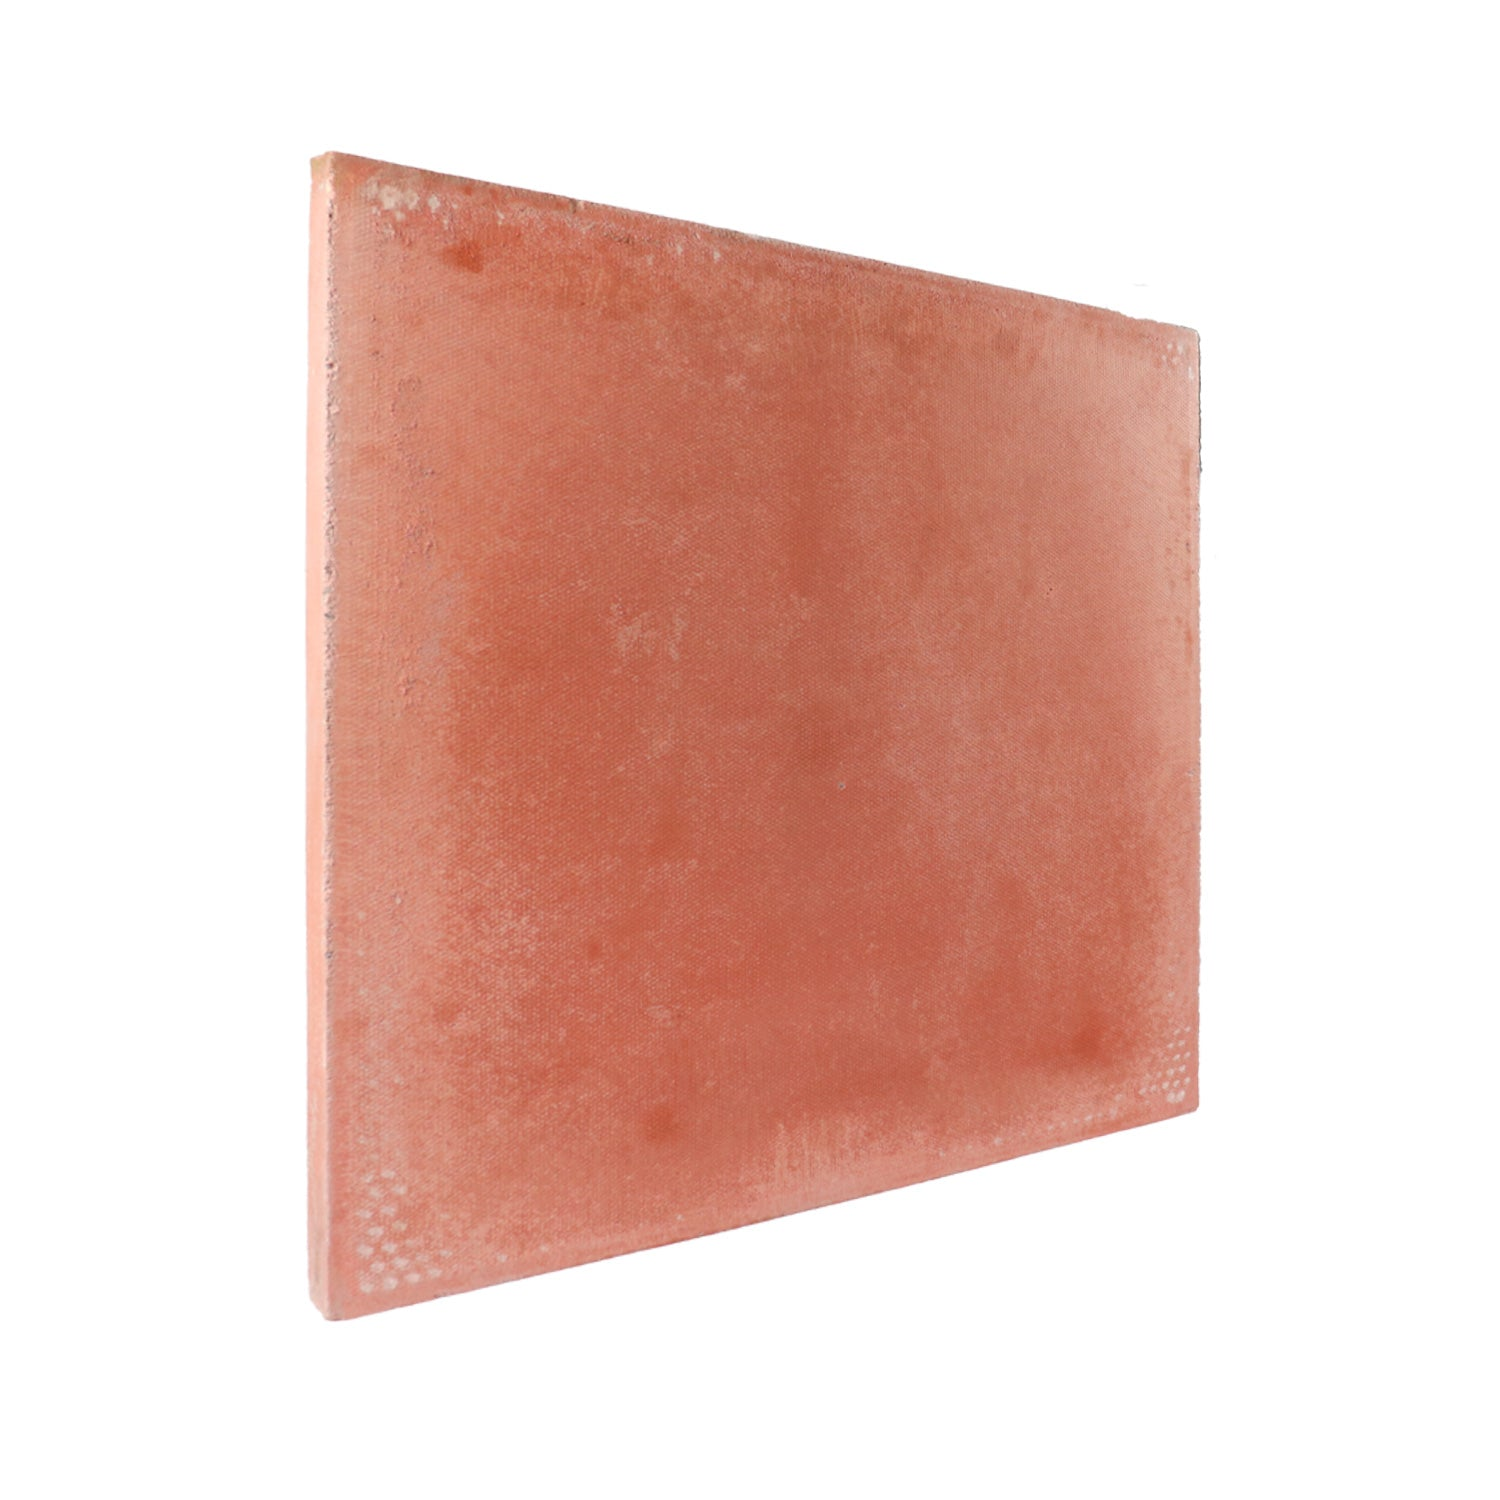 Peak Smooth Red Slabs 600mm x 600mm